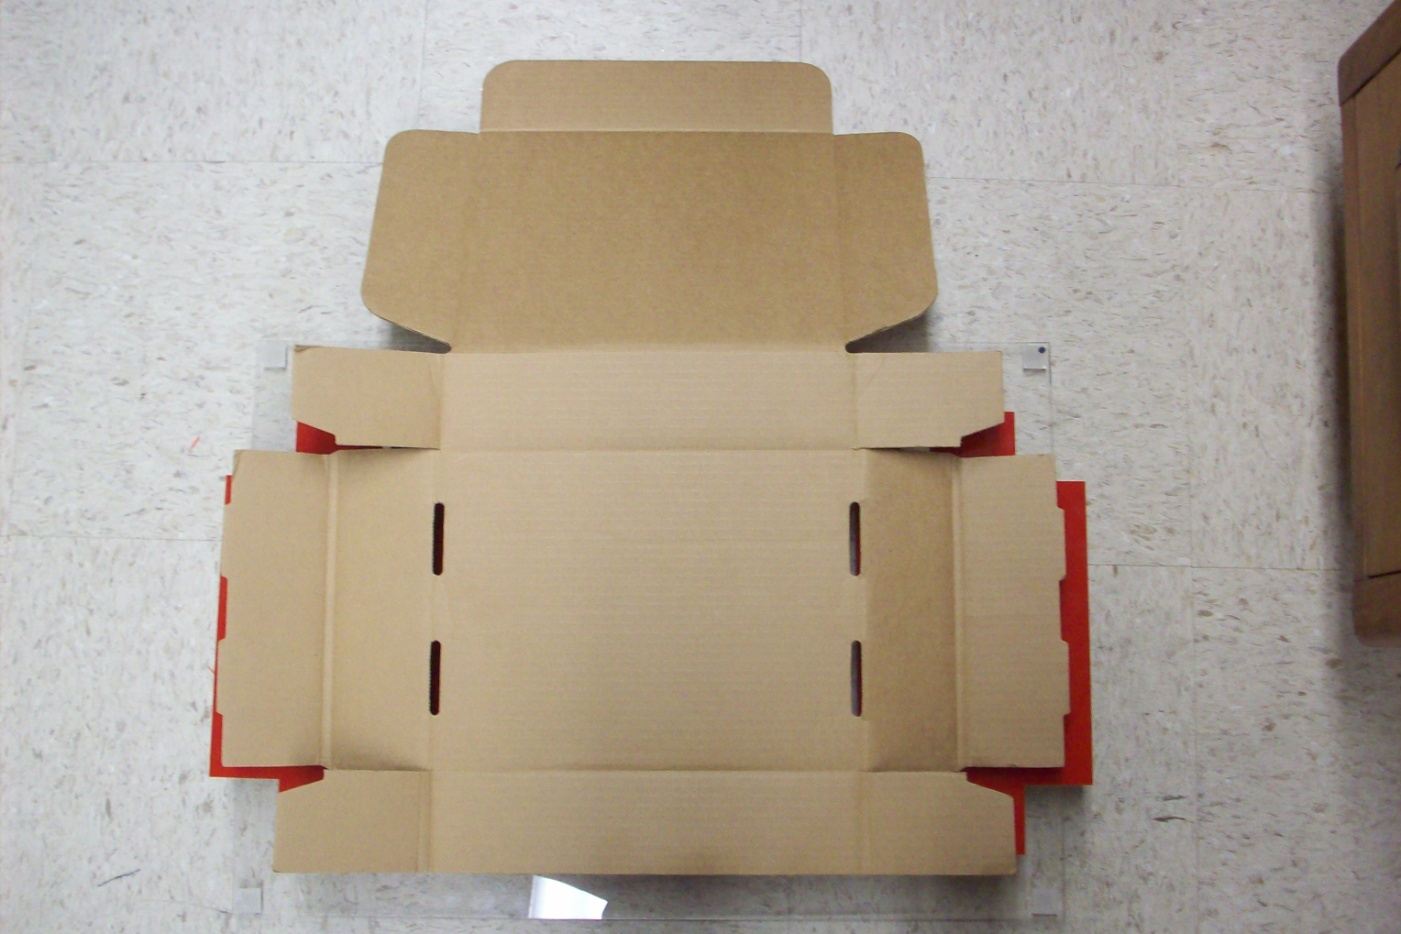 Assistive Technology for Box Assembly and Channel Tube Production